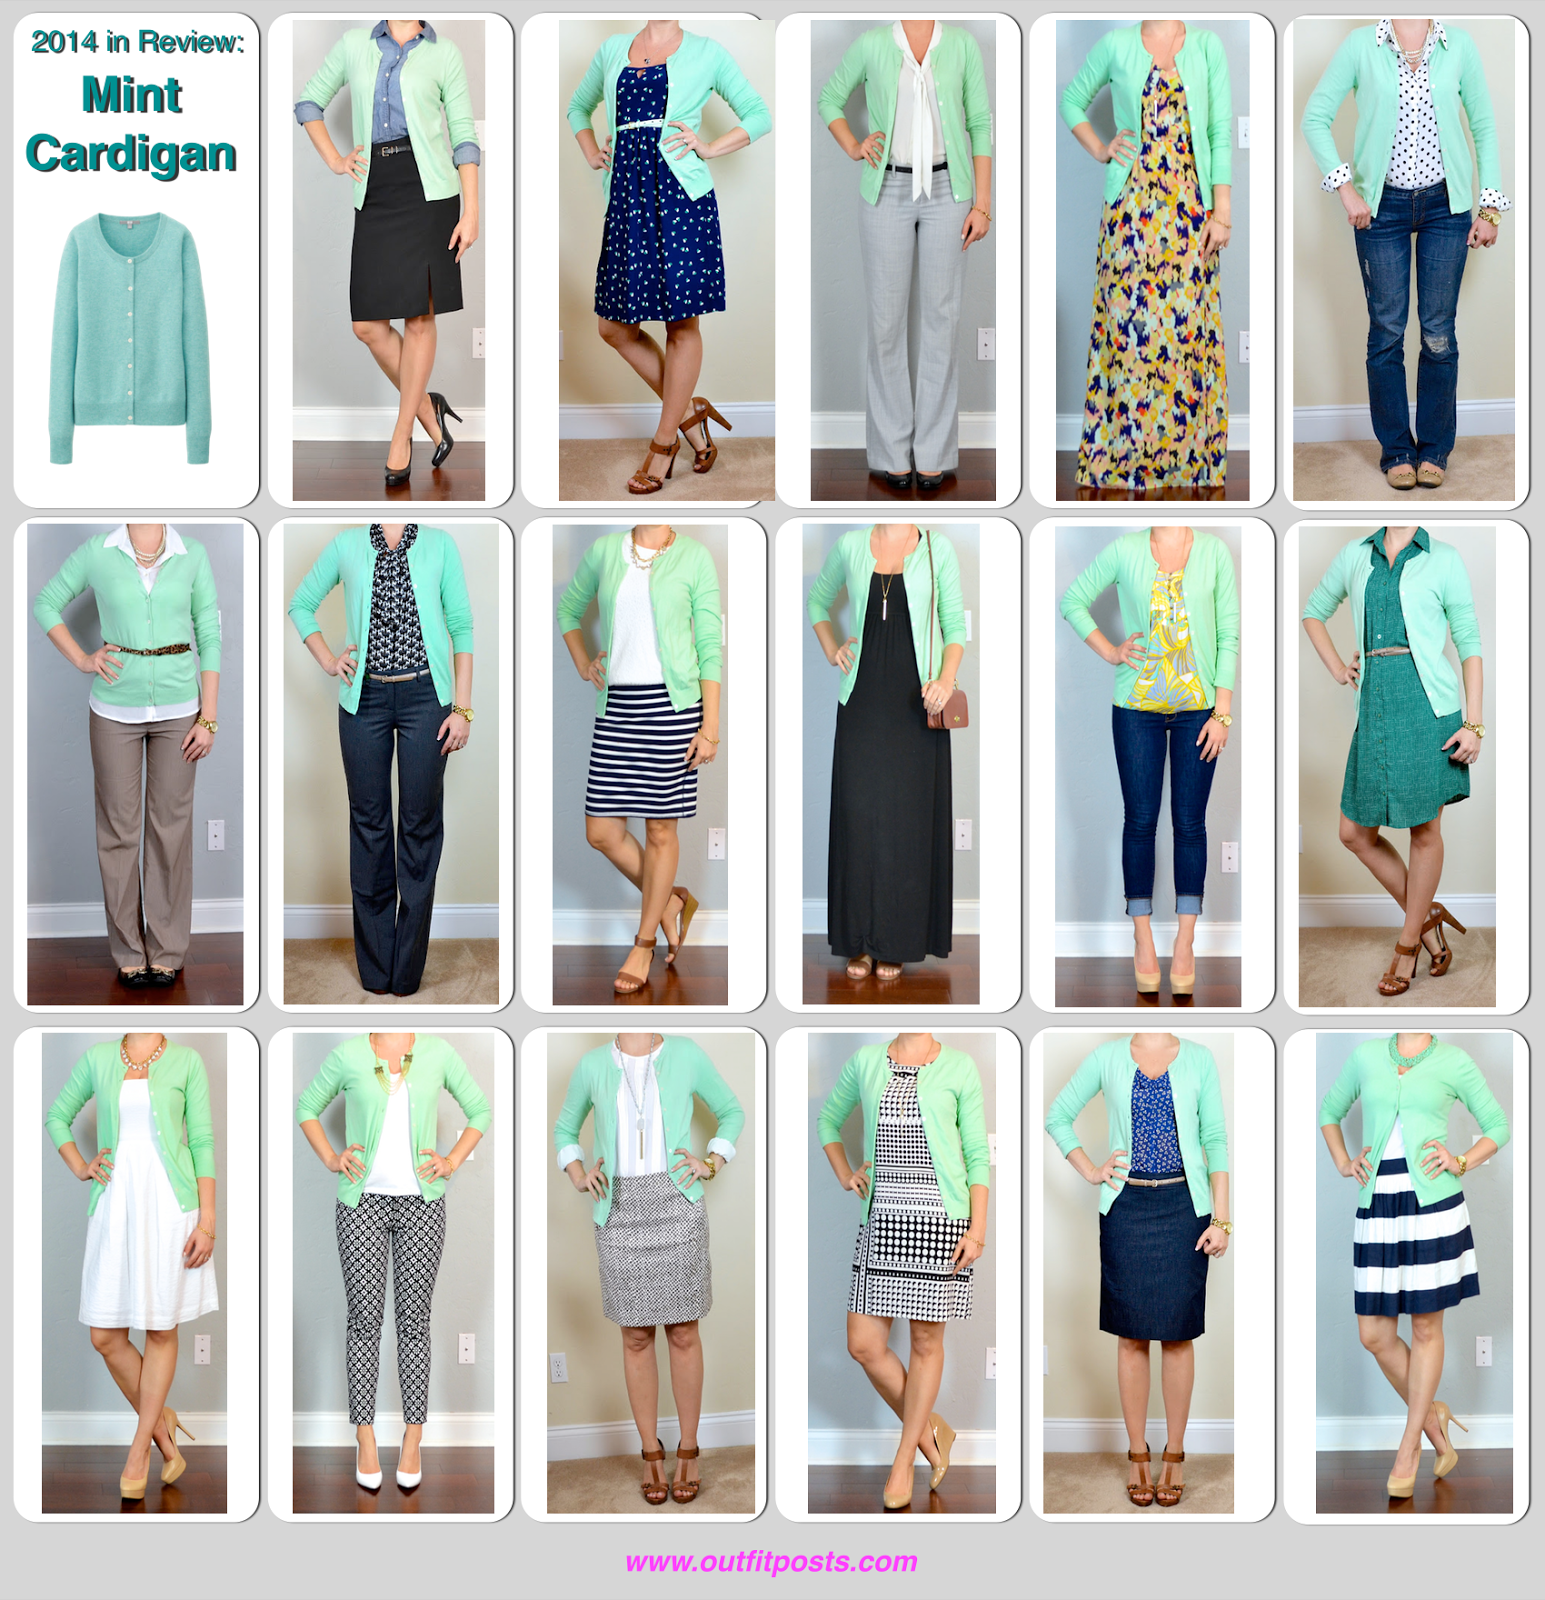 2014 in review \u2013 outfit posts mint cardigan \u2013 17 ways